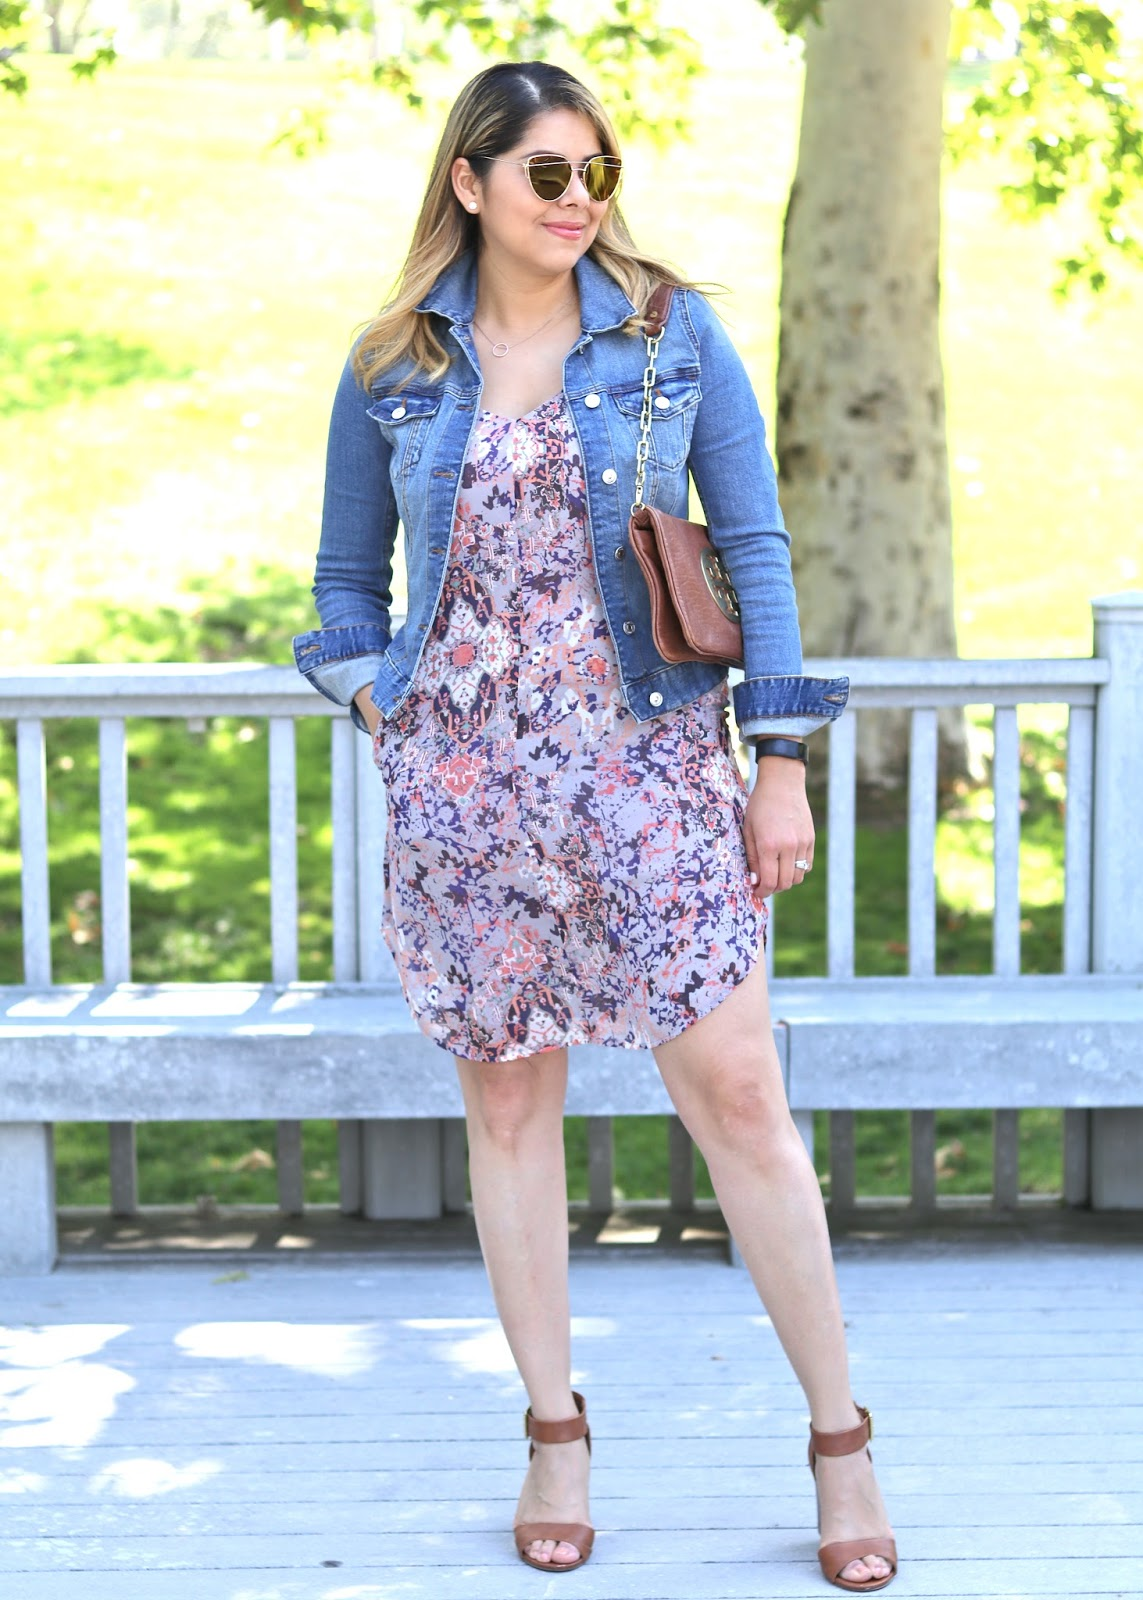 Casual outfit for Spring 2016, target ankle strap sandals, casual summer outfit, what to wear to a bbq, what to wear to a chill party, what to wear to an outdoor brunch, casual and stylish outfit